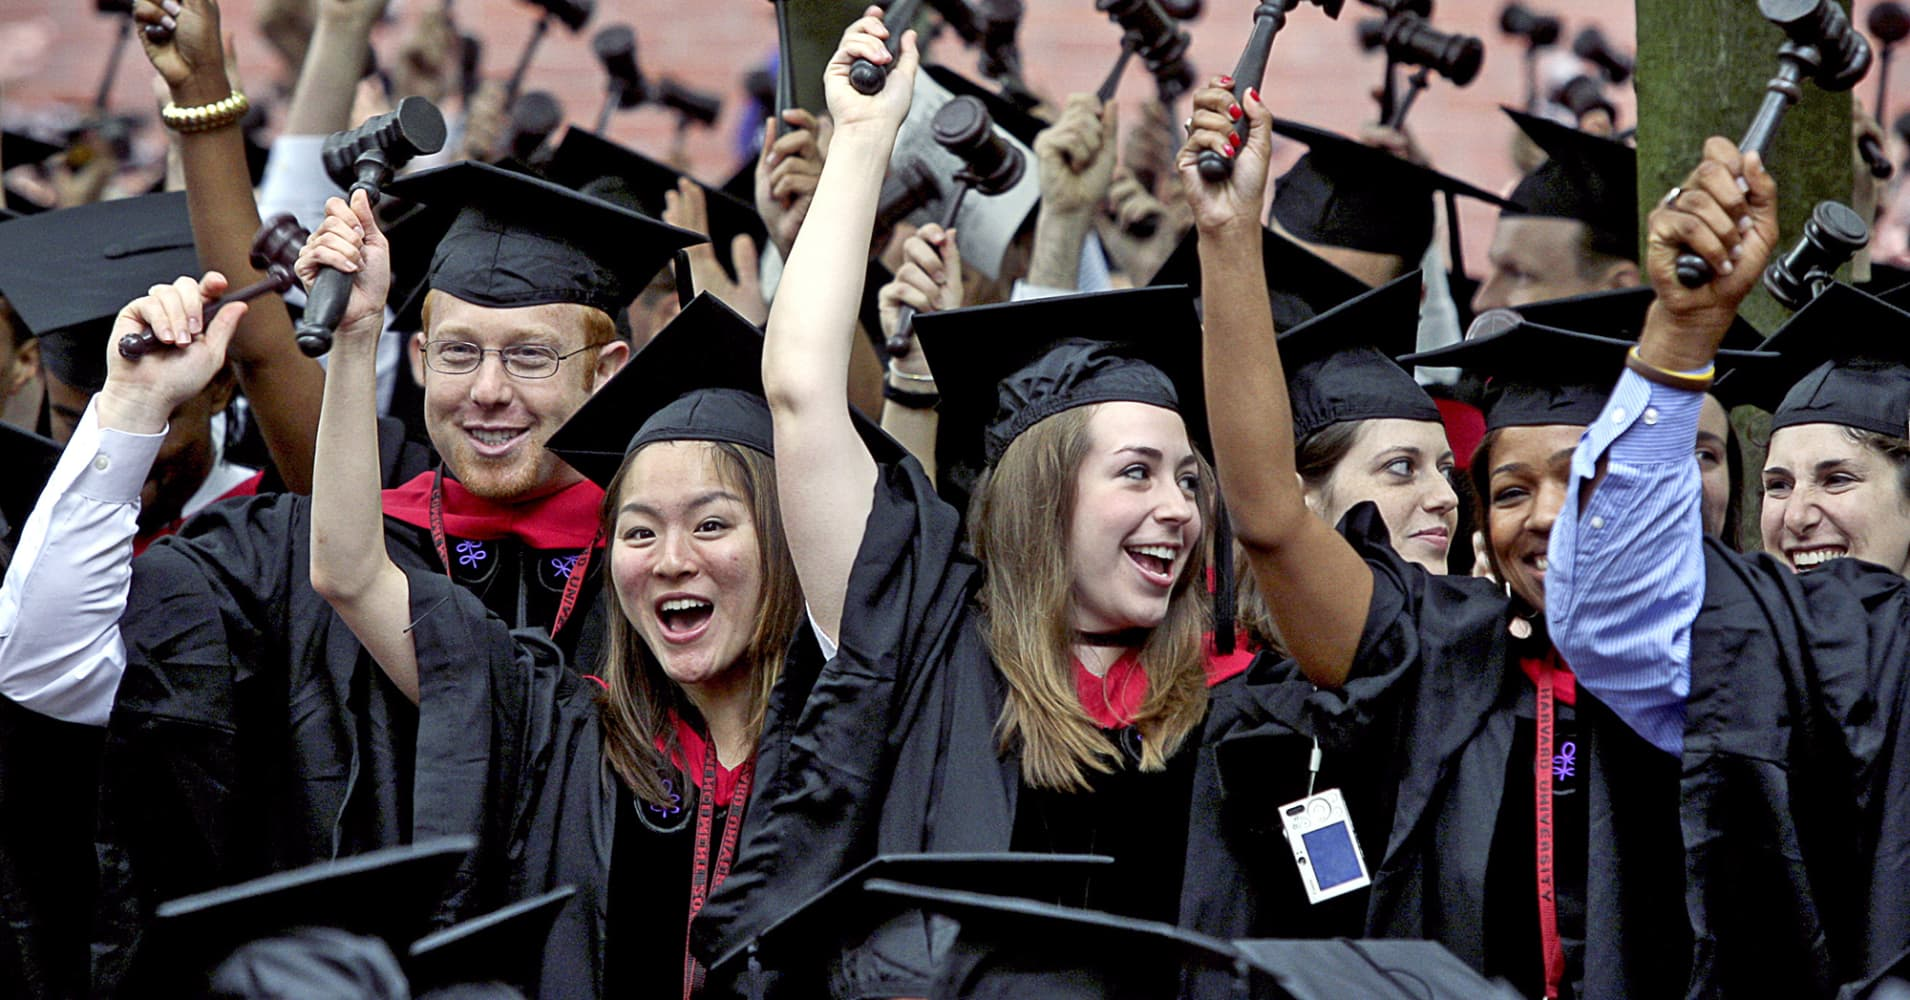 Harvard Law School graduates wave gavels in the air as they celebrate their commencement.